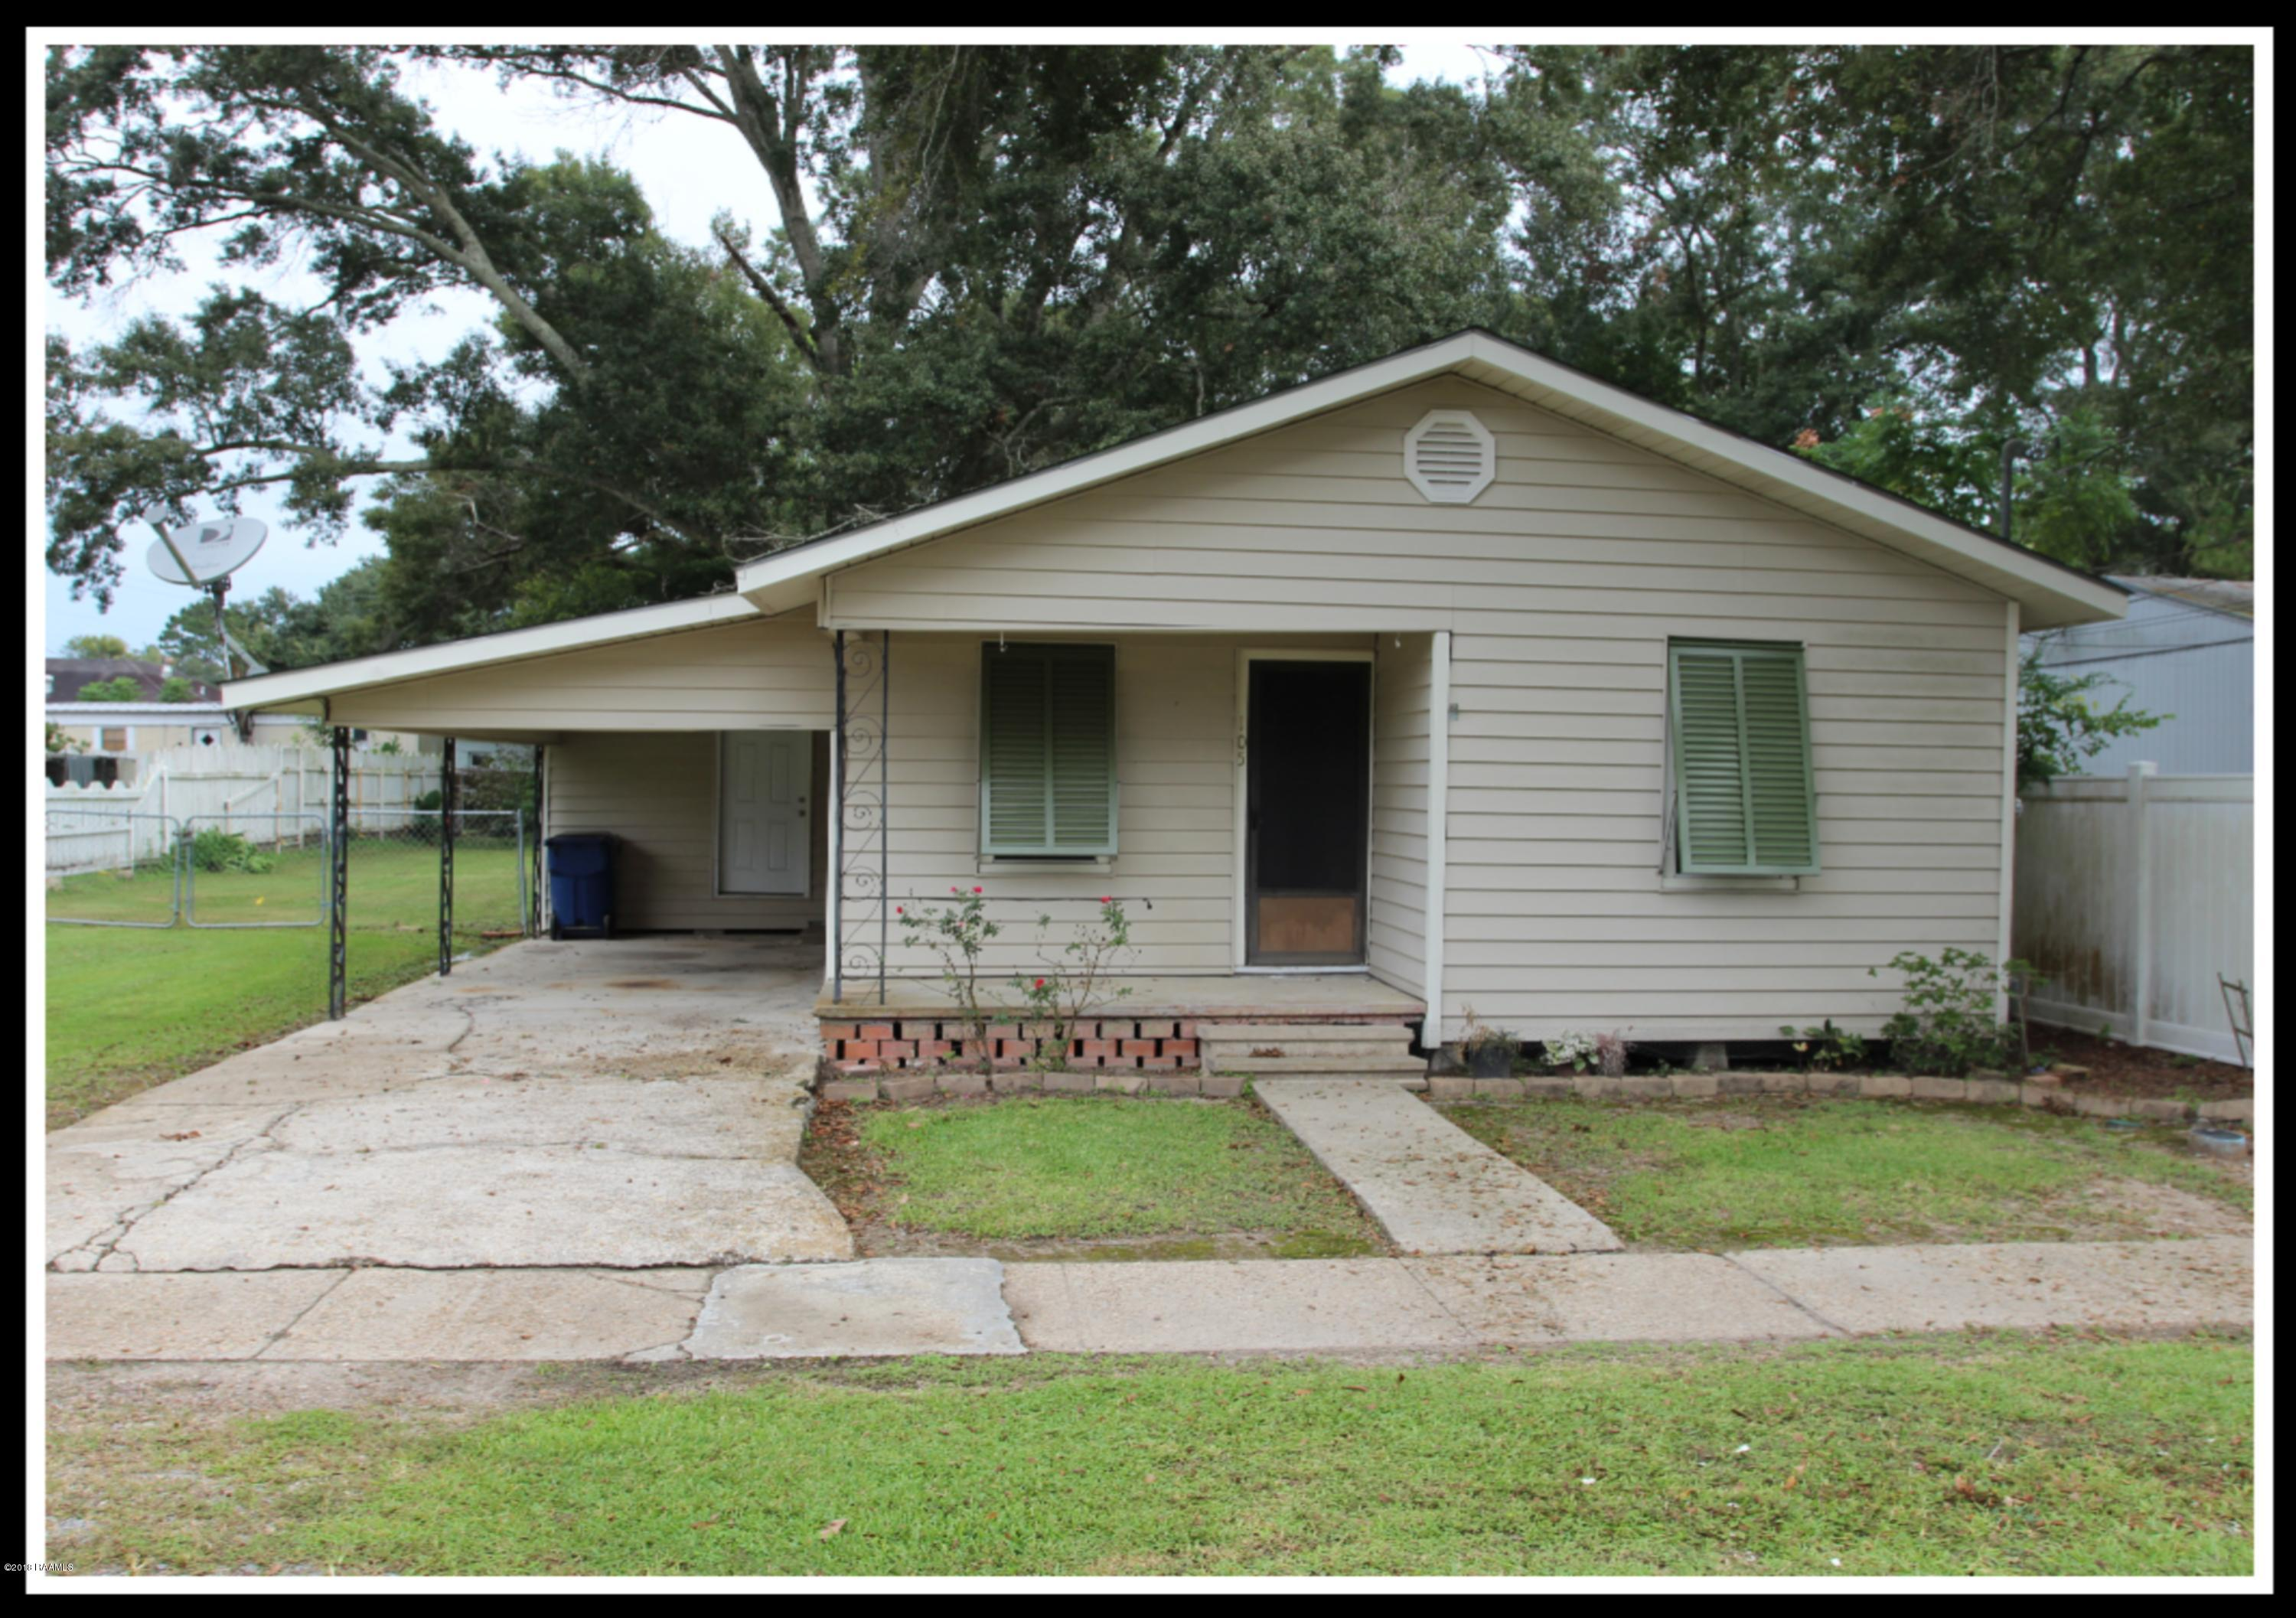 105 2nd Street, Duson, LA 70529 Photo #1